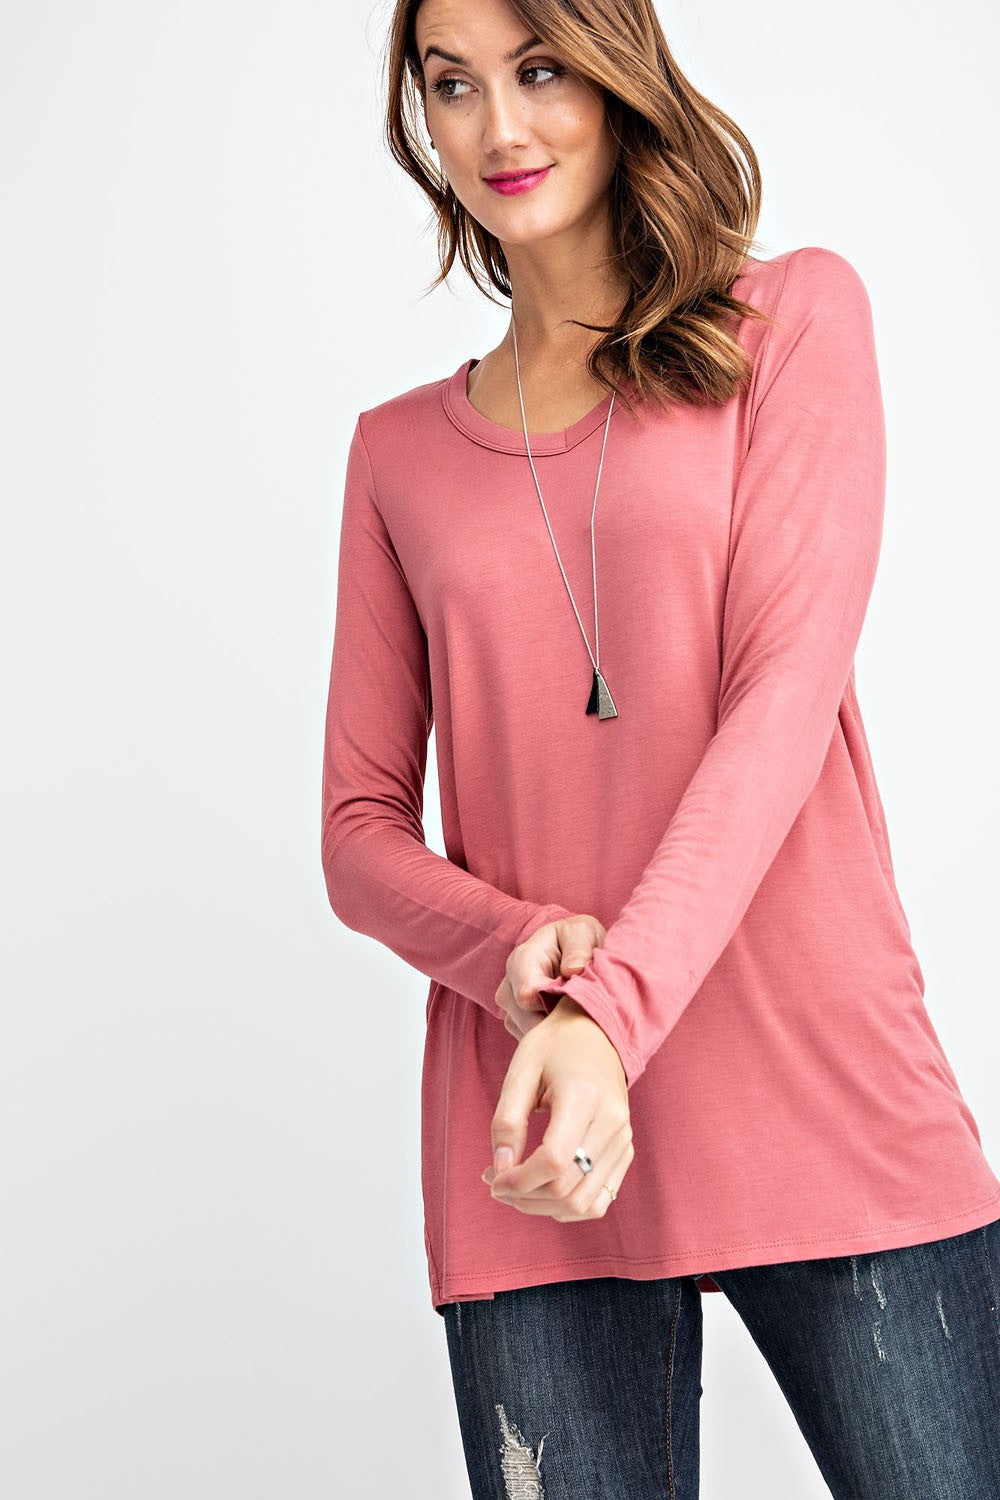 Marsala Long Sleeve V-Neck Top